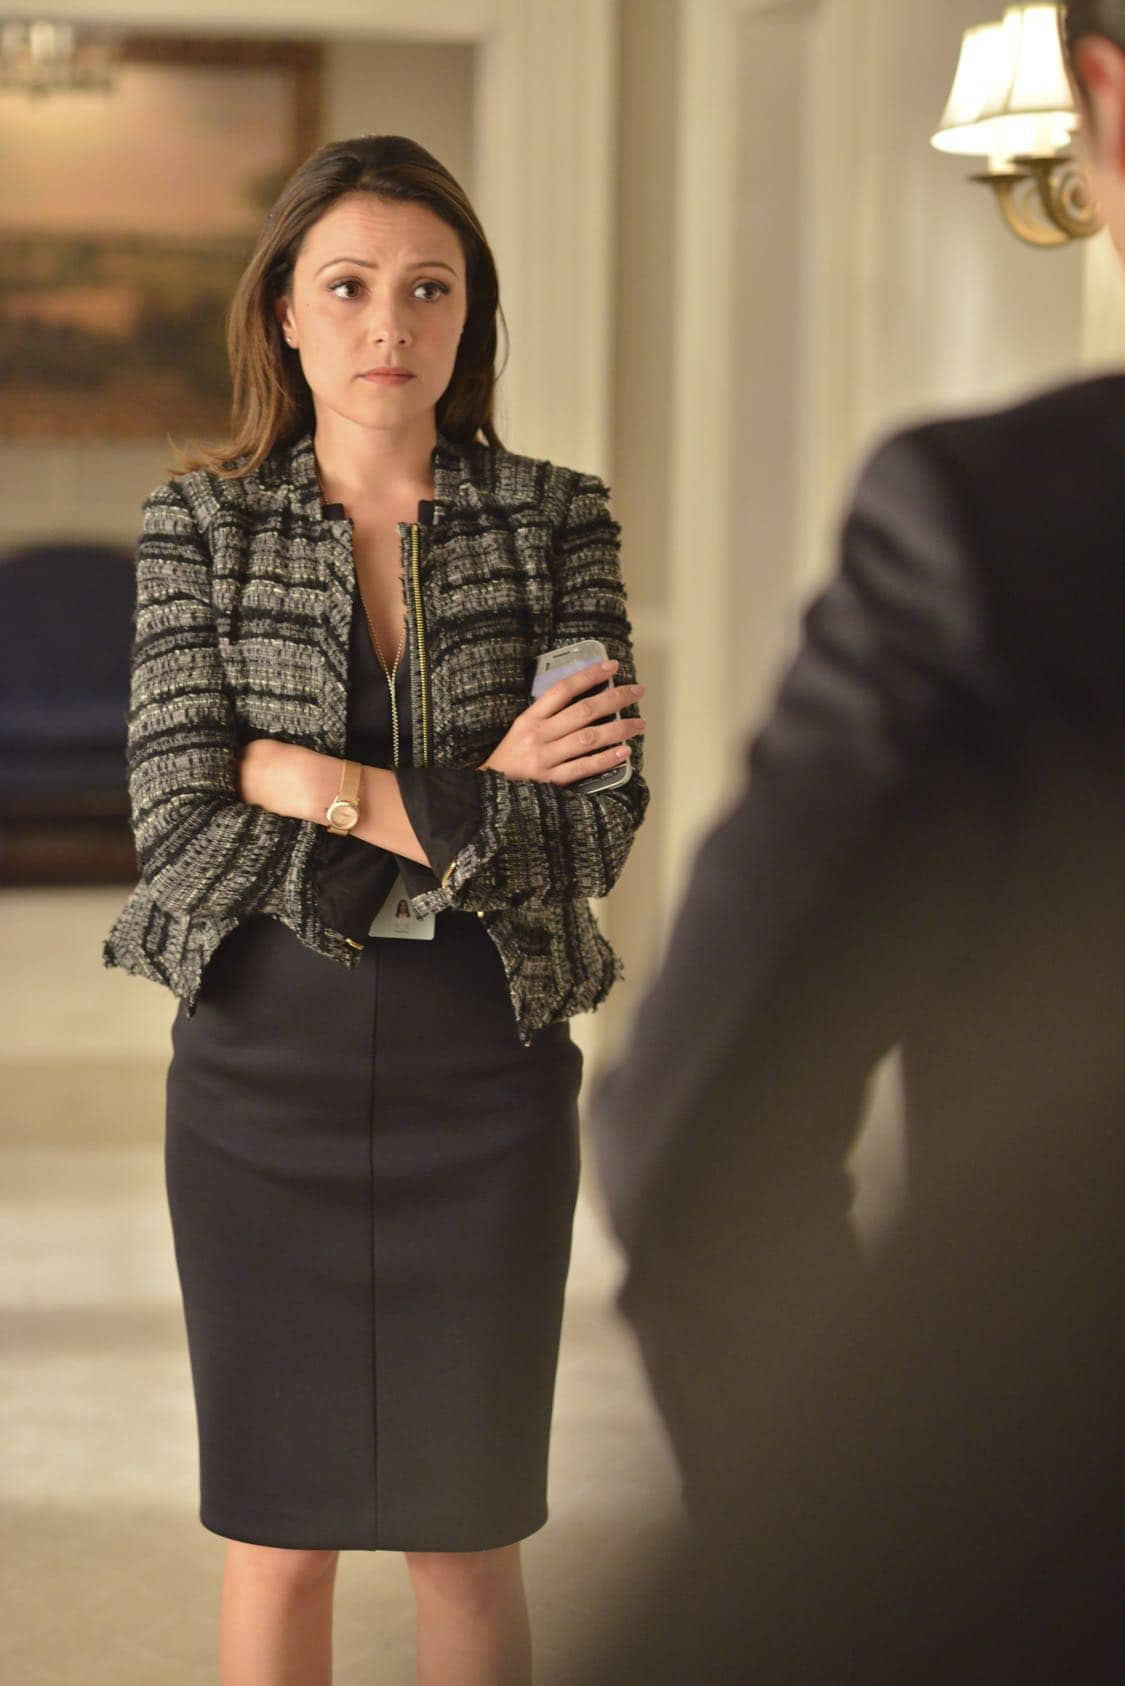 """DESIGNATED SURVIVOR - """"The Confession"""" – President Kirkman and his staff work to keep a high-level security breach of the White House a secret just as he's about to give his first television interview. Meanwhile, the FBI continues to investigate the Capitol bombing, and Agent Hannah Wells starts to develop her own theories about who was really behind the attack, on ABC's """"Designated Survivor,"""" WEDNESDAY, OCTOBER 5 (10:00—11:00 p.m. EDT). (ABC/Sven Frenzel) ITALIA RICCI"""